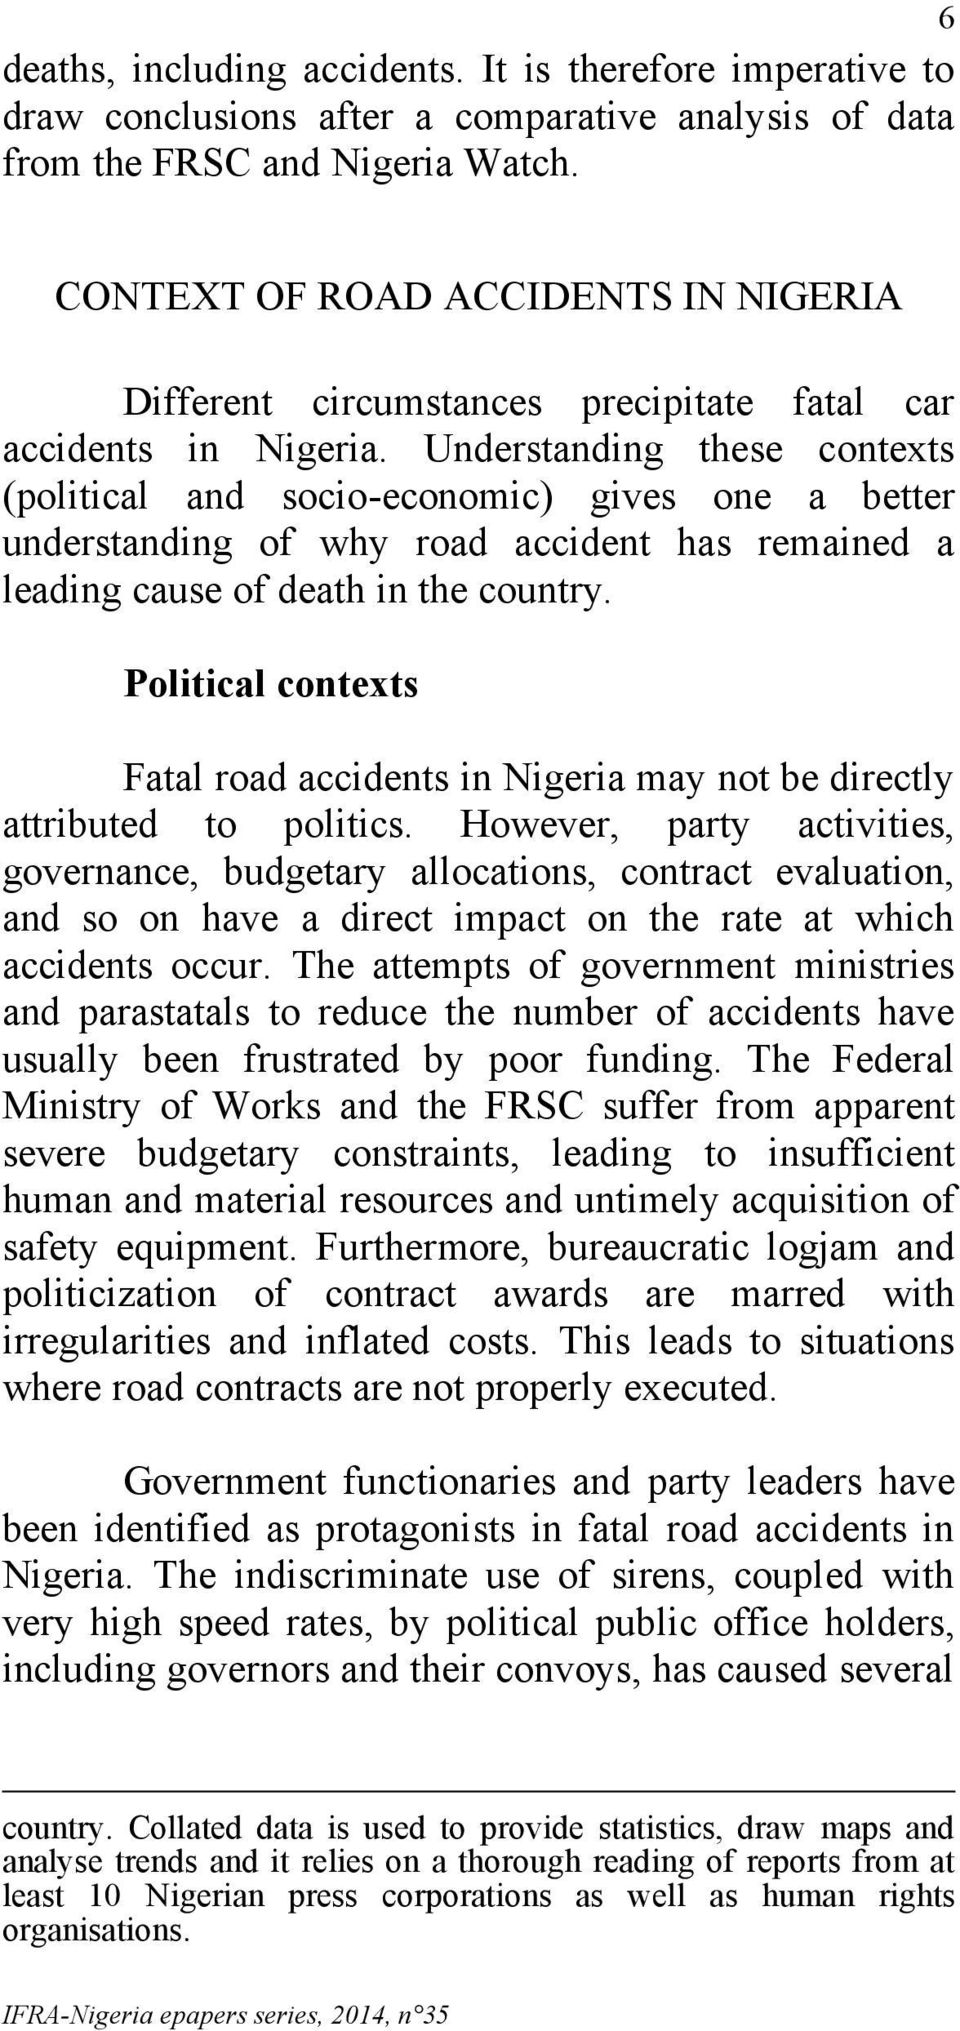 Understanding these contexts (political and socio-economic) gives one a better understanding of why road accident has remained a leading cause of death in the country.